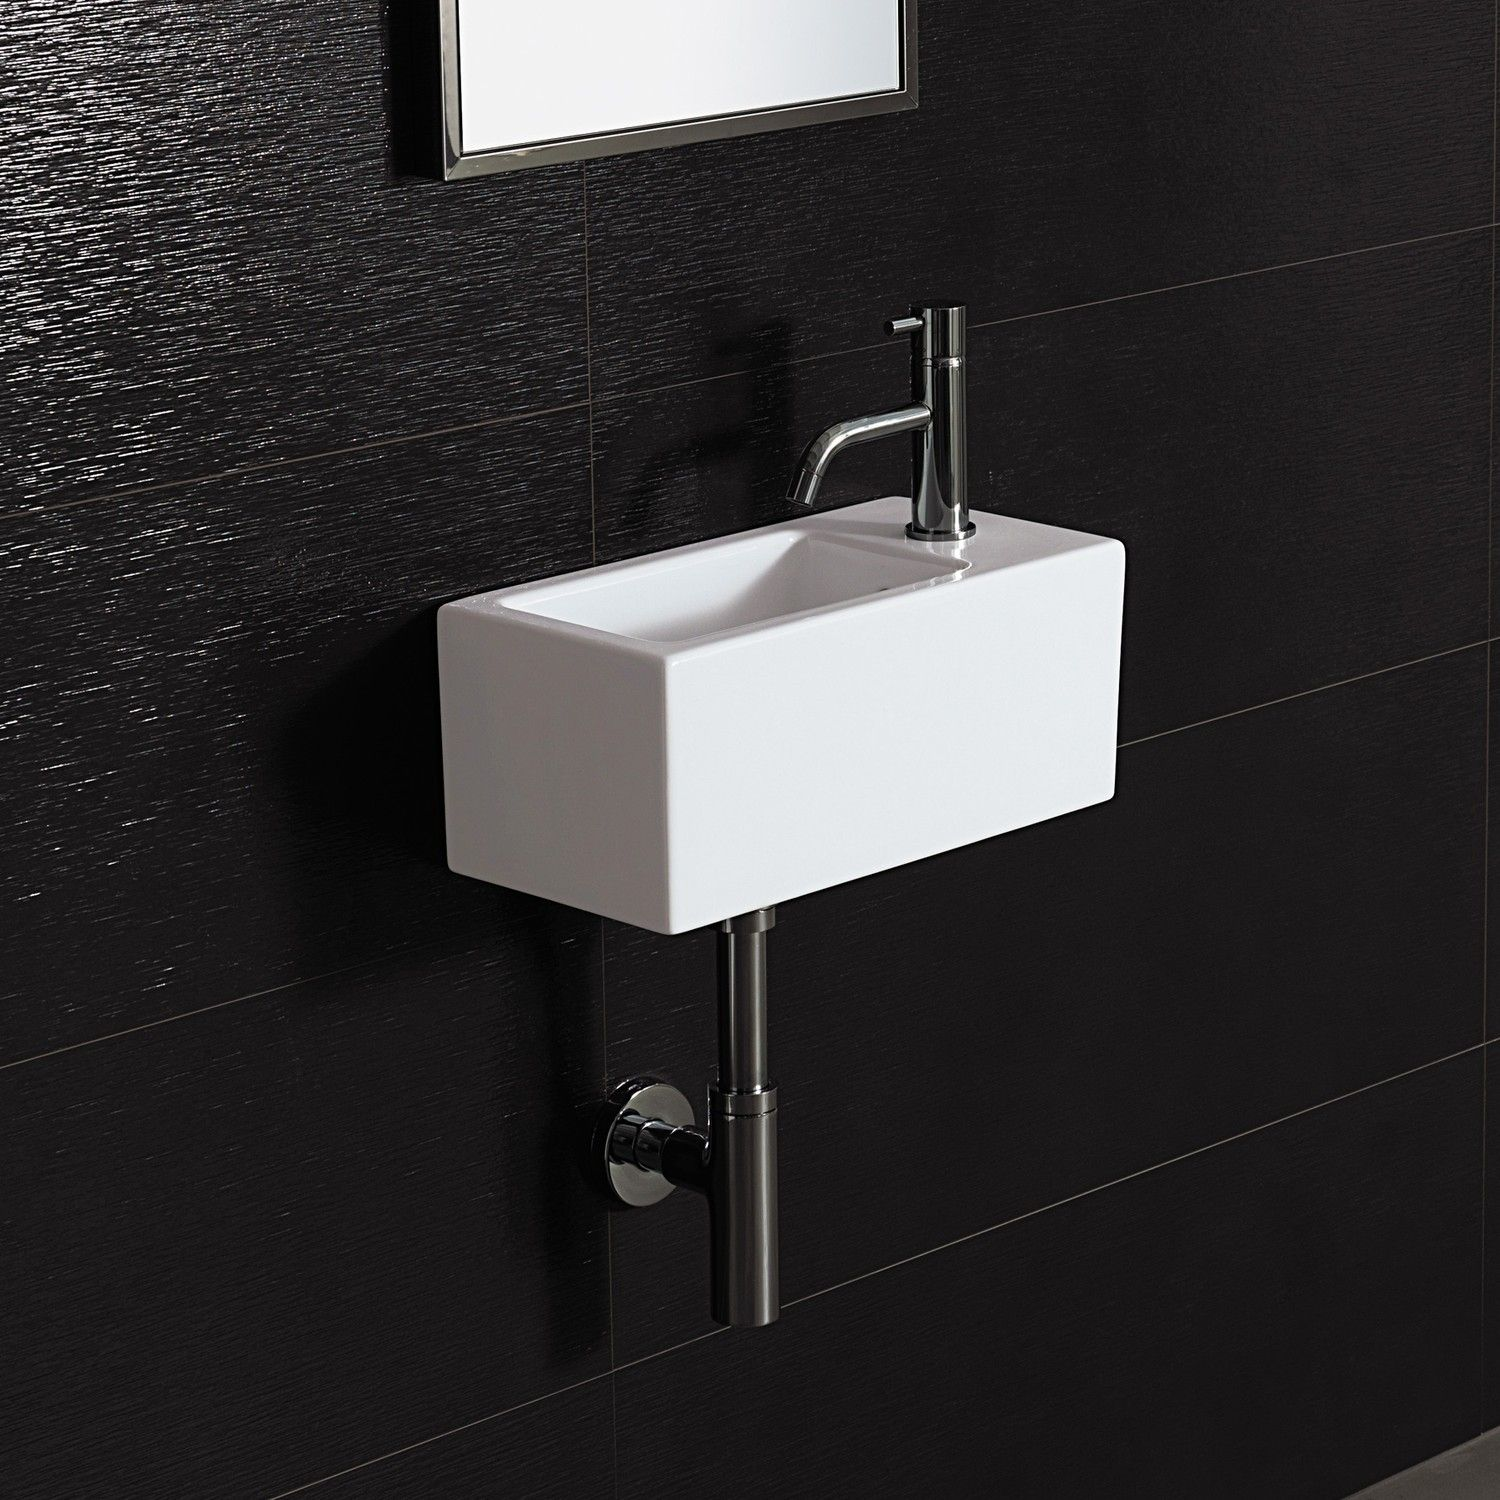 Small Rectangular Bathroom Sink on modern wall mount sinks, small wall sink, small rectangular bar sink, small rectangular ceramic, small modern bathroom sink, small rectangular shower, small rectangular mirrors, small rectangular houses, small bathroom sink dimensions, small bathroom updates, small undermount sink, small vessel sink, small rectangular home, small rectangular toilet seats, small rectangular windows,